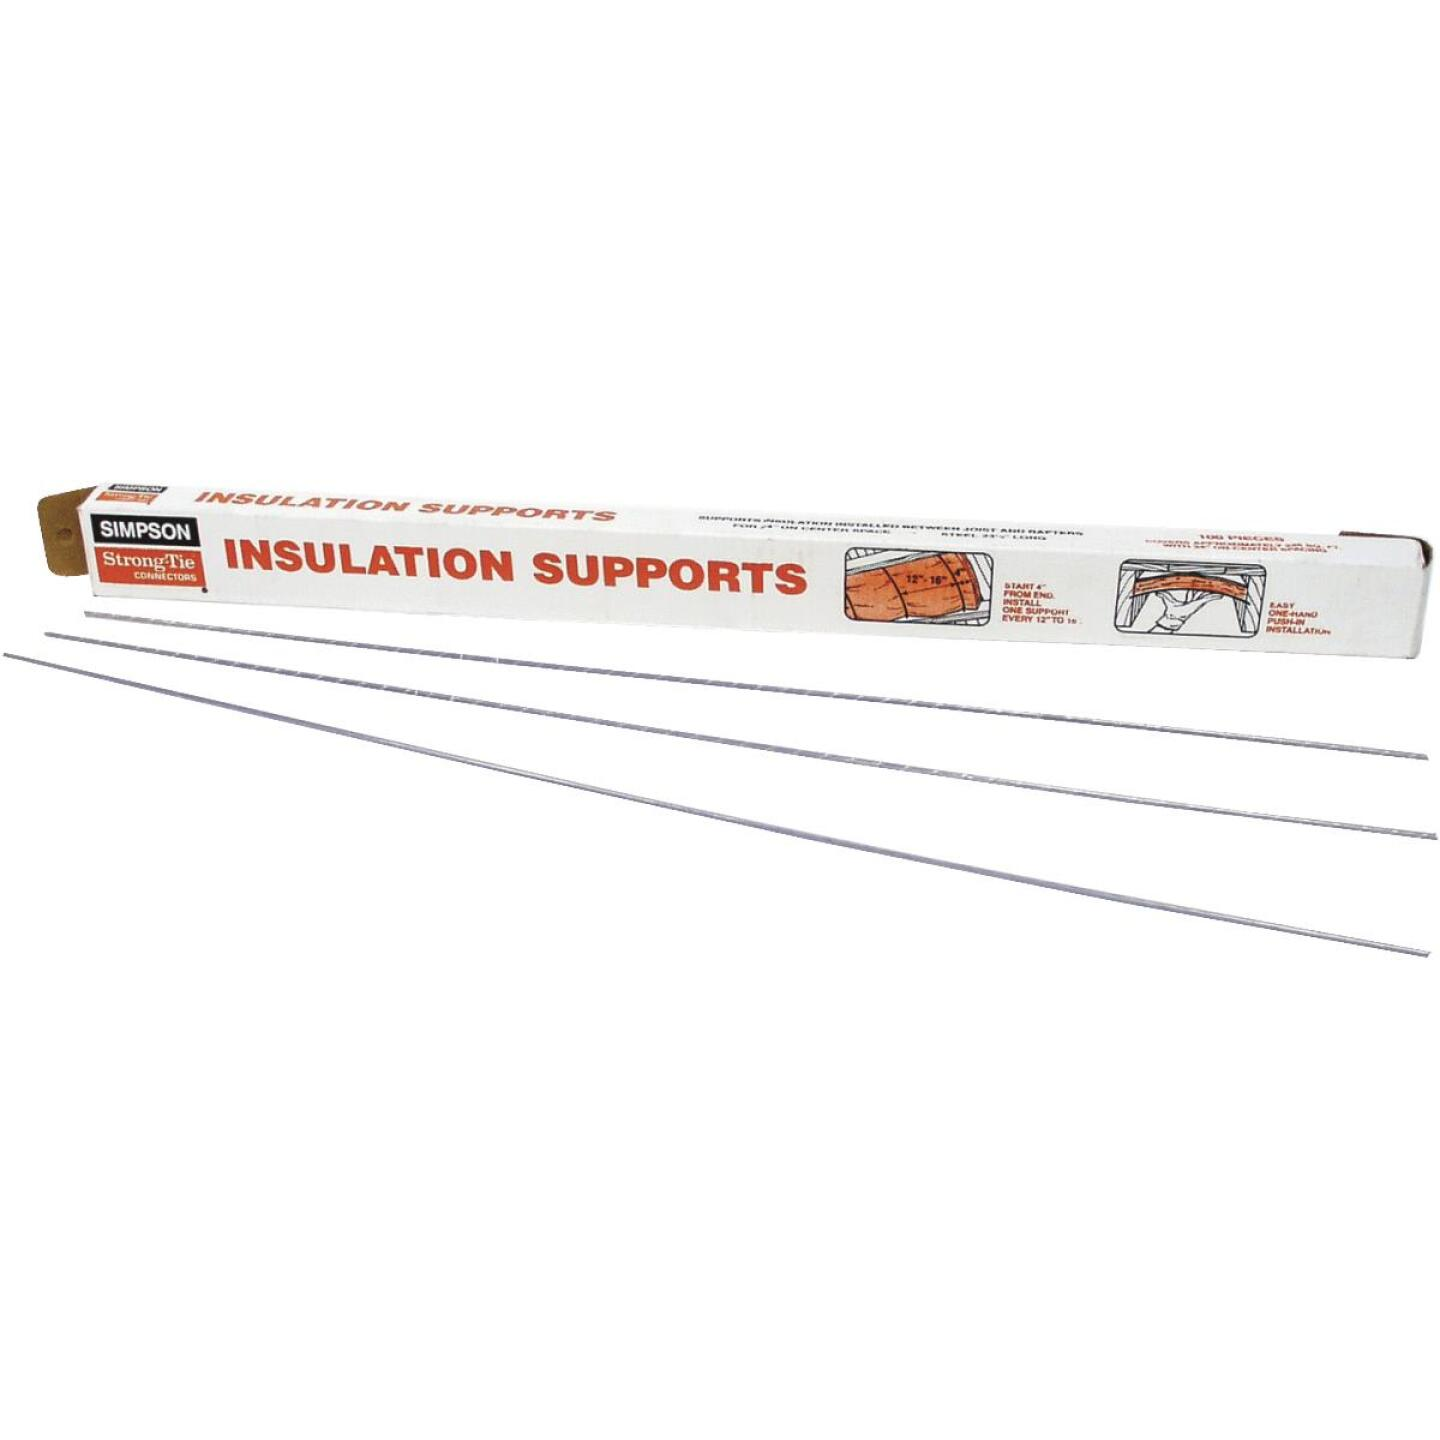 Simpson Strong-Tie 24 In. 14-Gauge Insulation Support Image 1